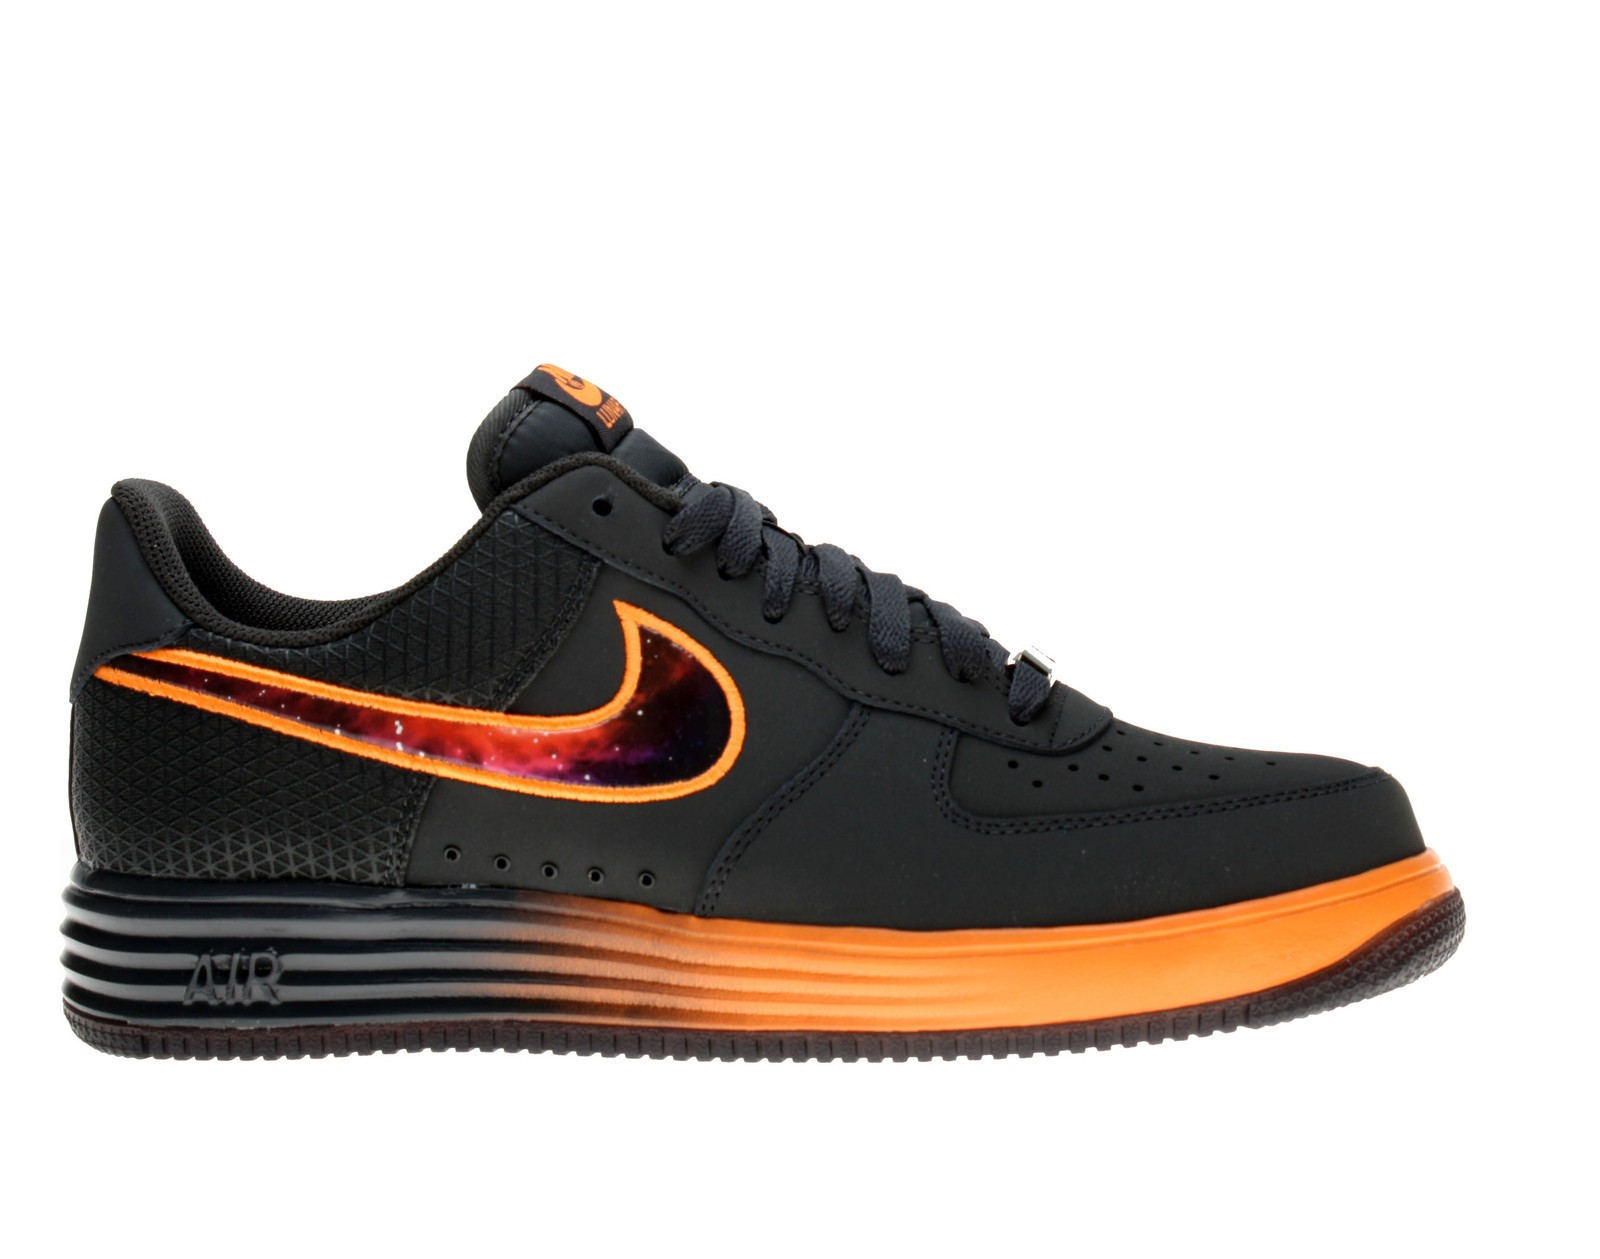 Nike Air Force One Lunar 580383 001 Men